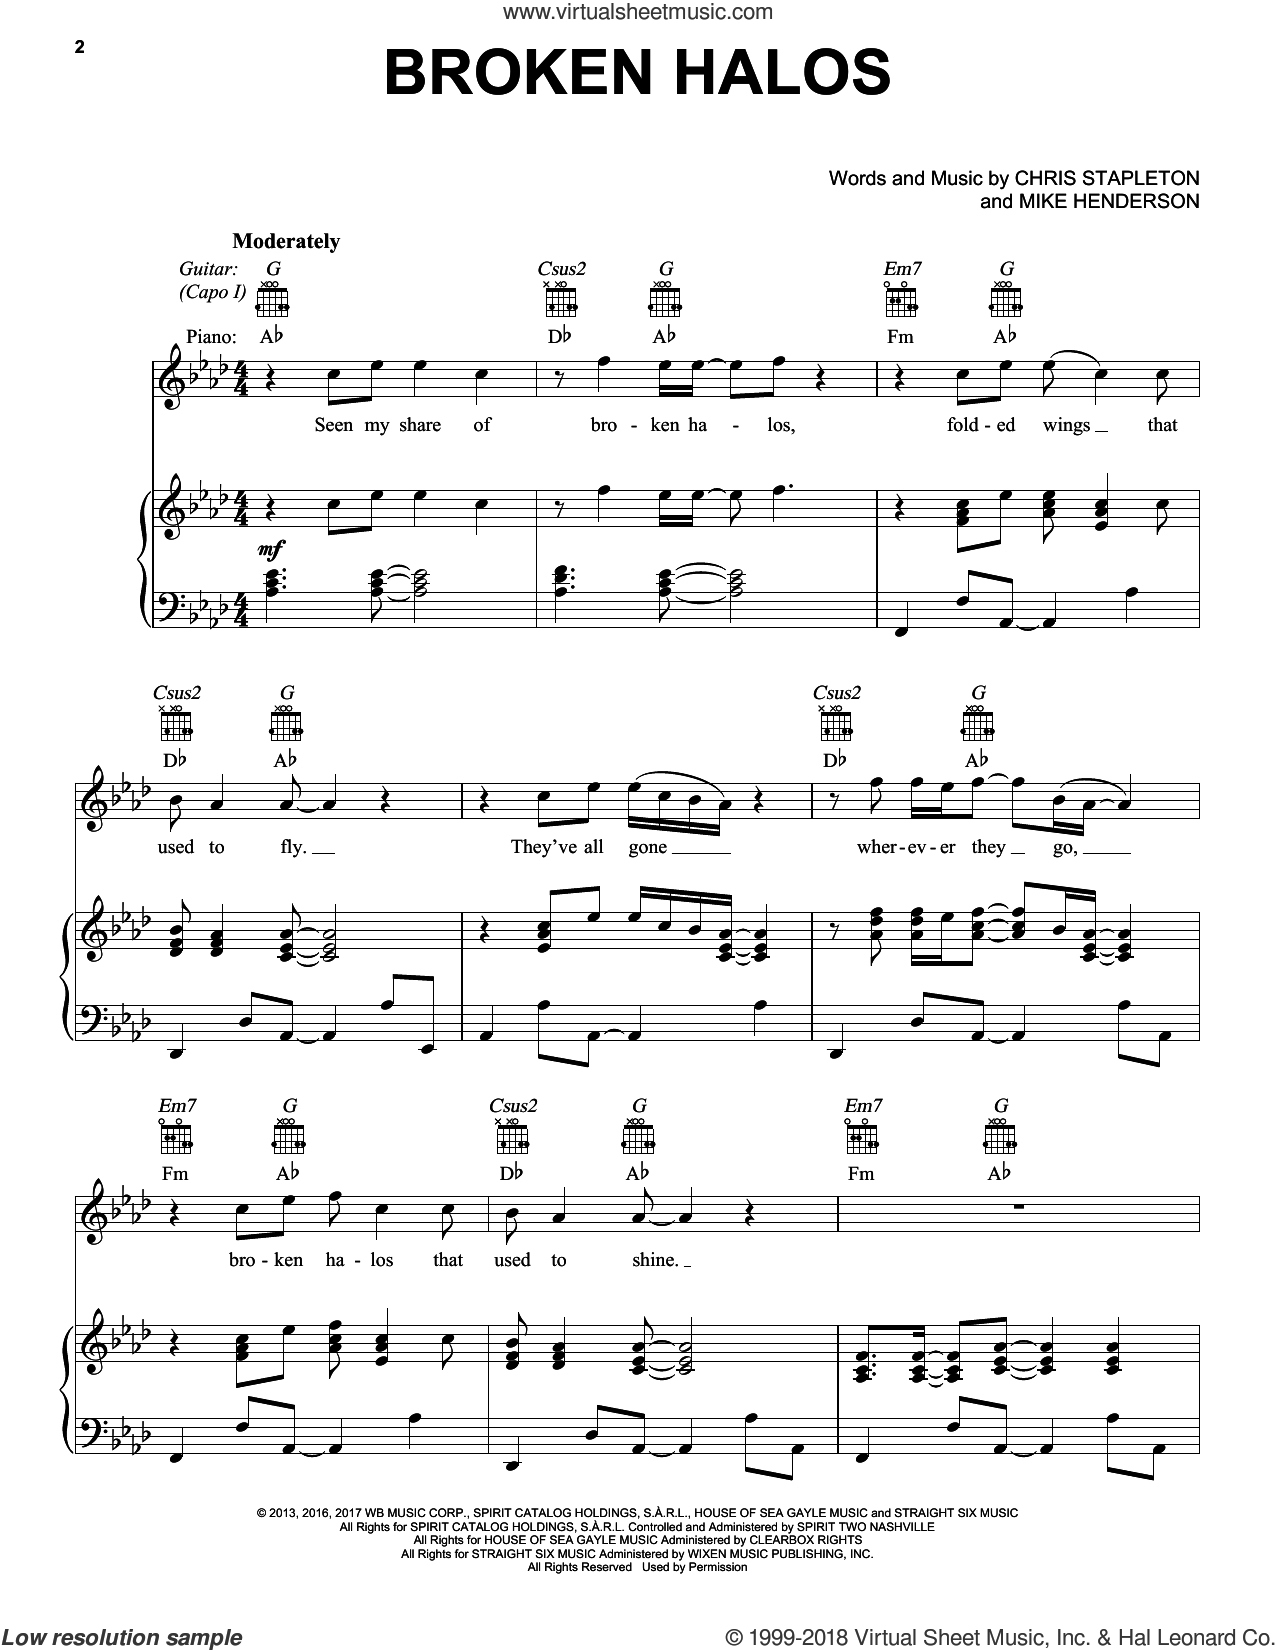 Broken Halos sheet music for voice, piano or guitar by Chris Stapleton and Mike Henderson, intermediate skill level